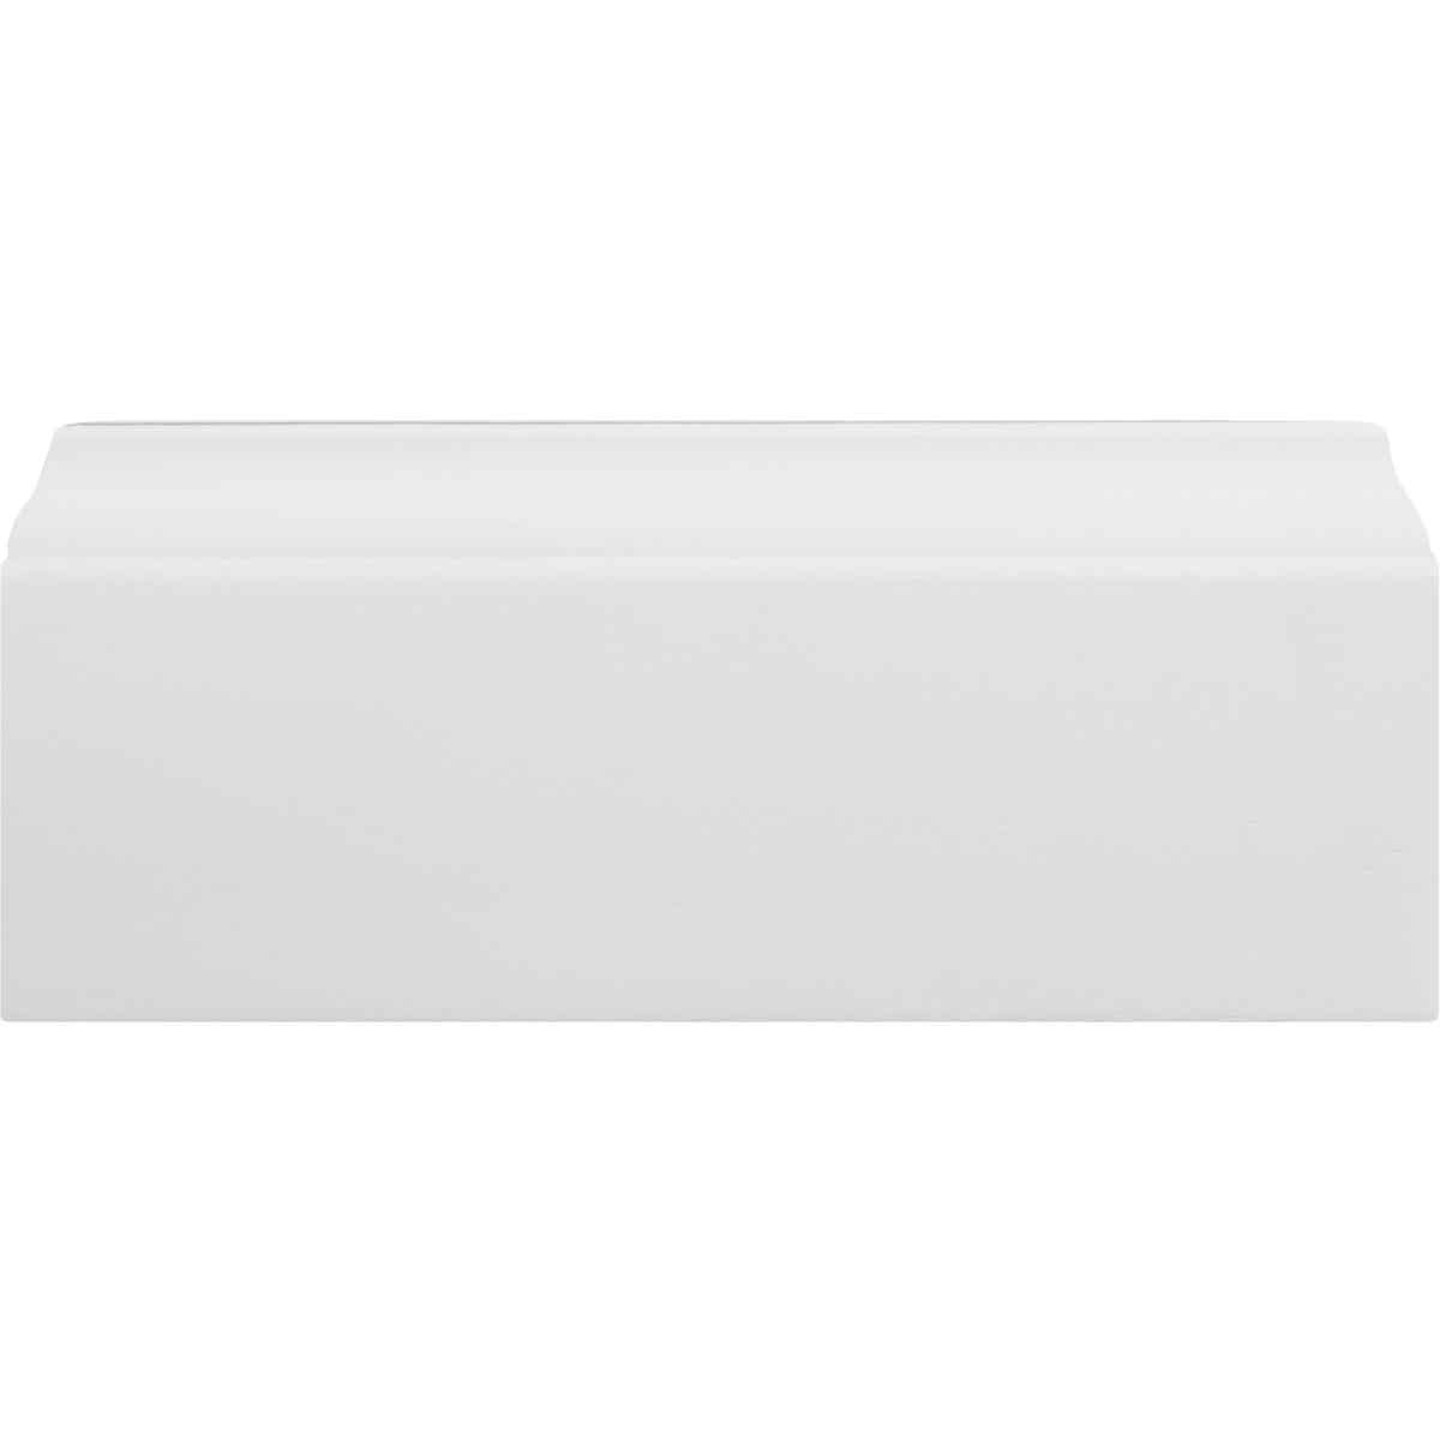 Inteplast Building Products 3/8 In. W. x 3-3/16 In. H. x 8 Ft. L. Crystal White Polystyrene Colonial Base Molding Image 3